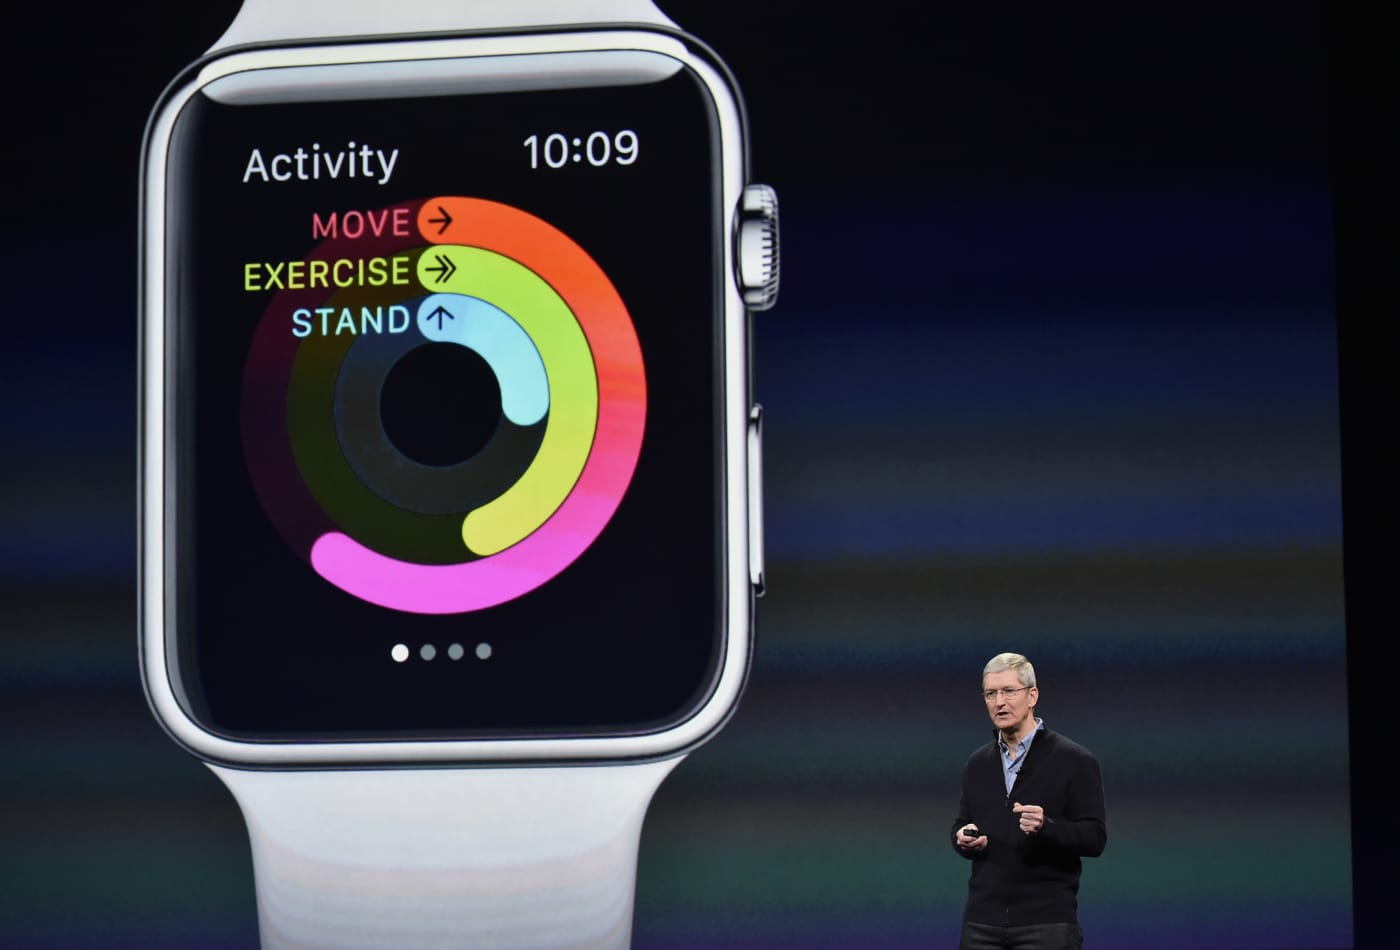 Apple and Microsoft representatives are set to join a meeting on Monday promoting patient access to health data